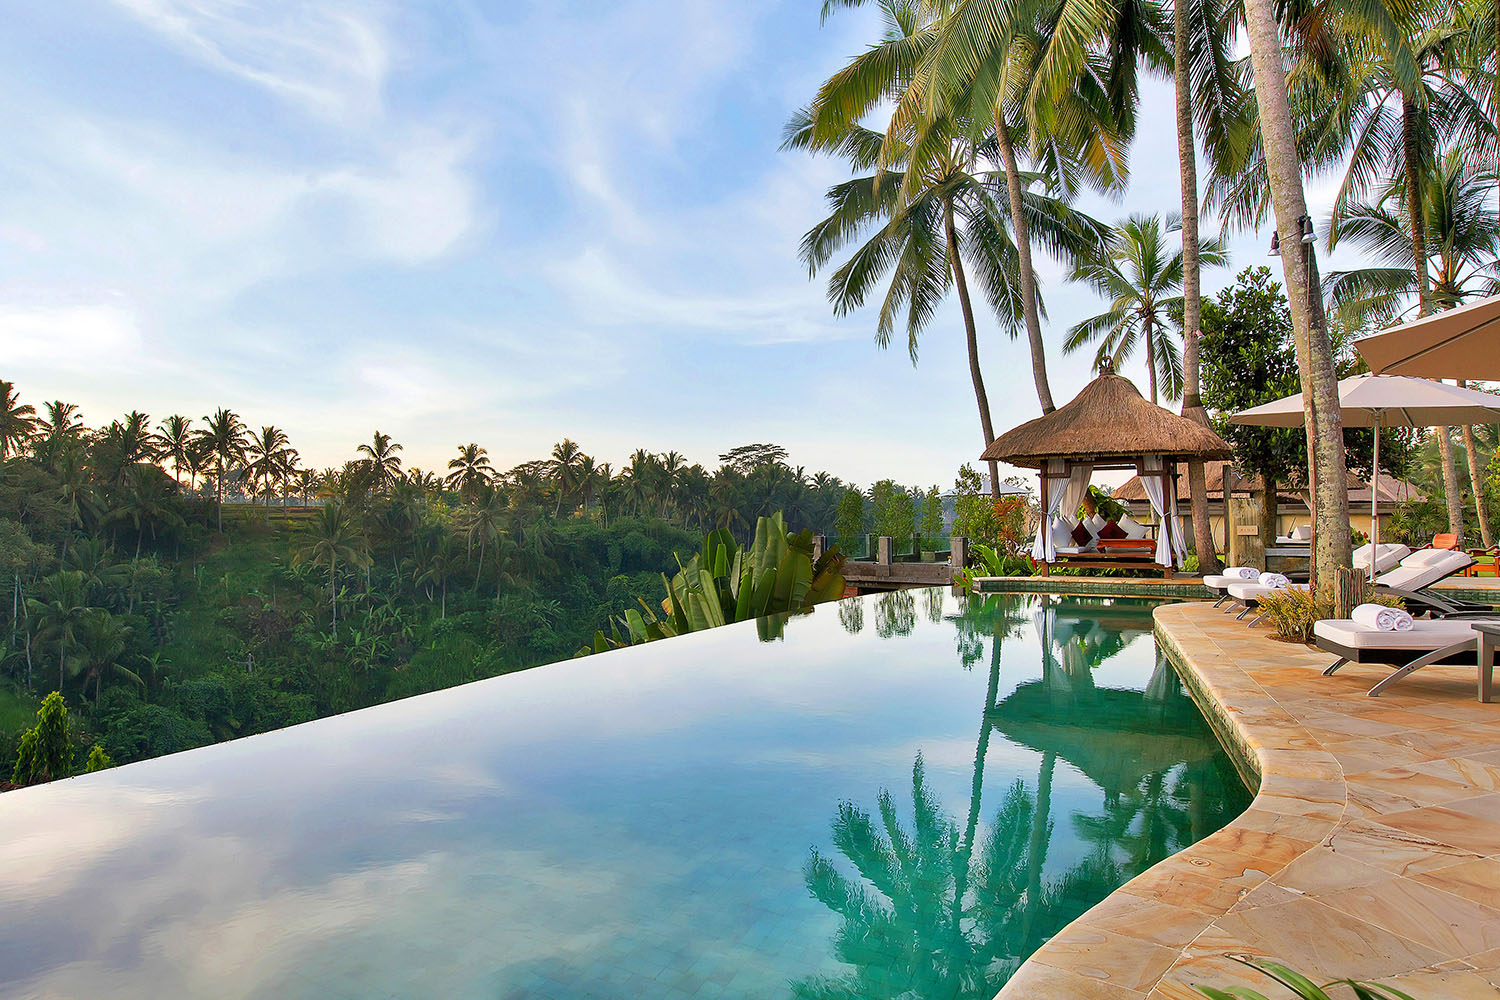 Viceroy bali review hotels accommodation luxury for Bali indonesia hotels 5 star